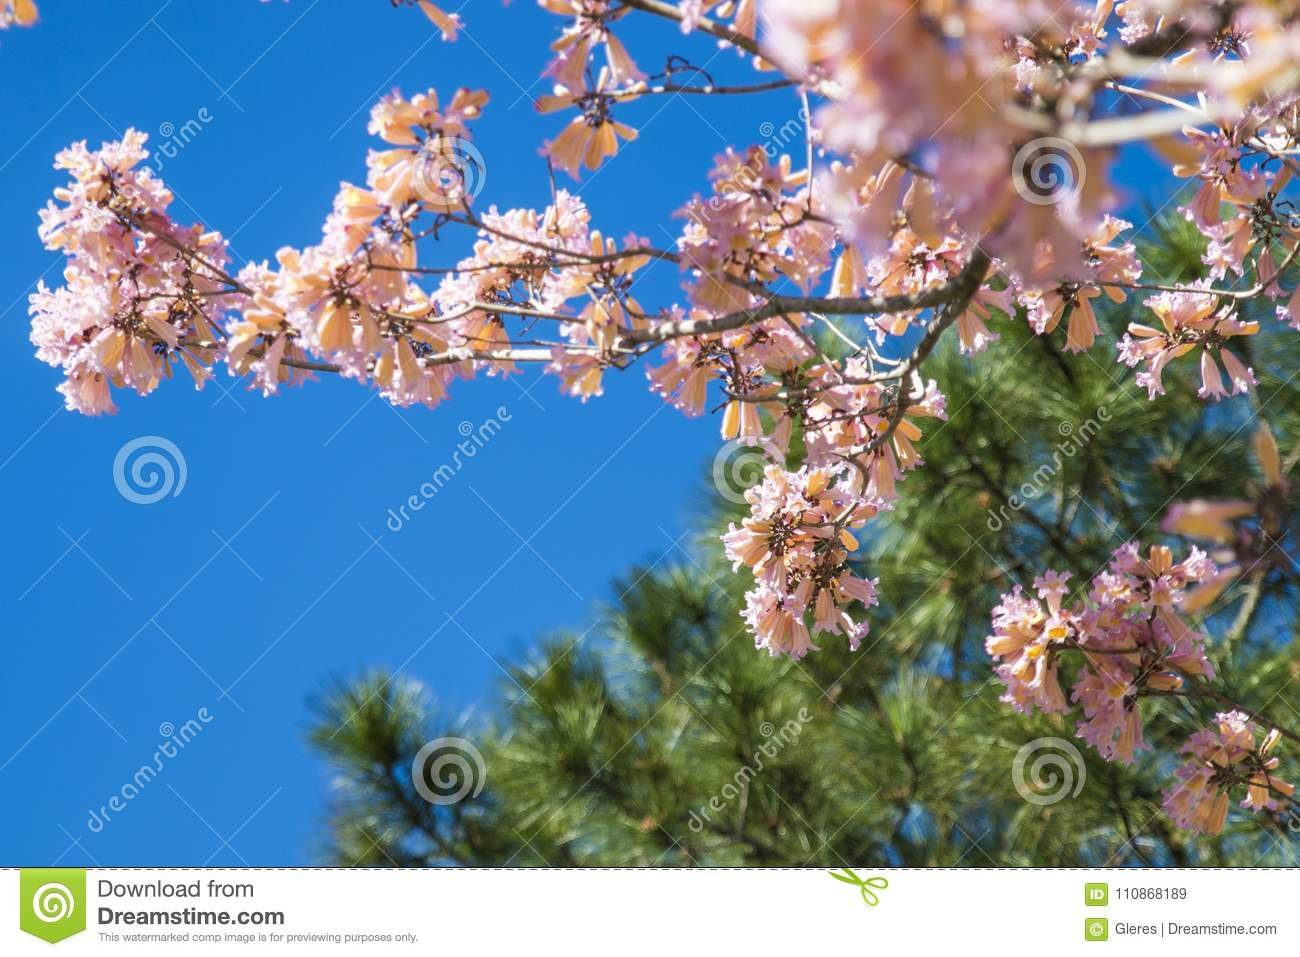 Spring flowering of trees stock image image of trees 110868189 spring flowering of trees izmirmasajfo